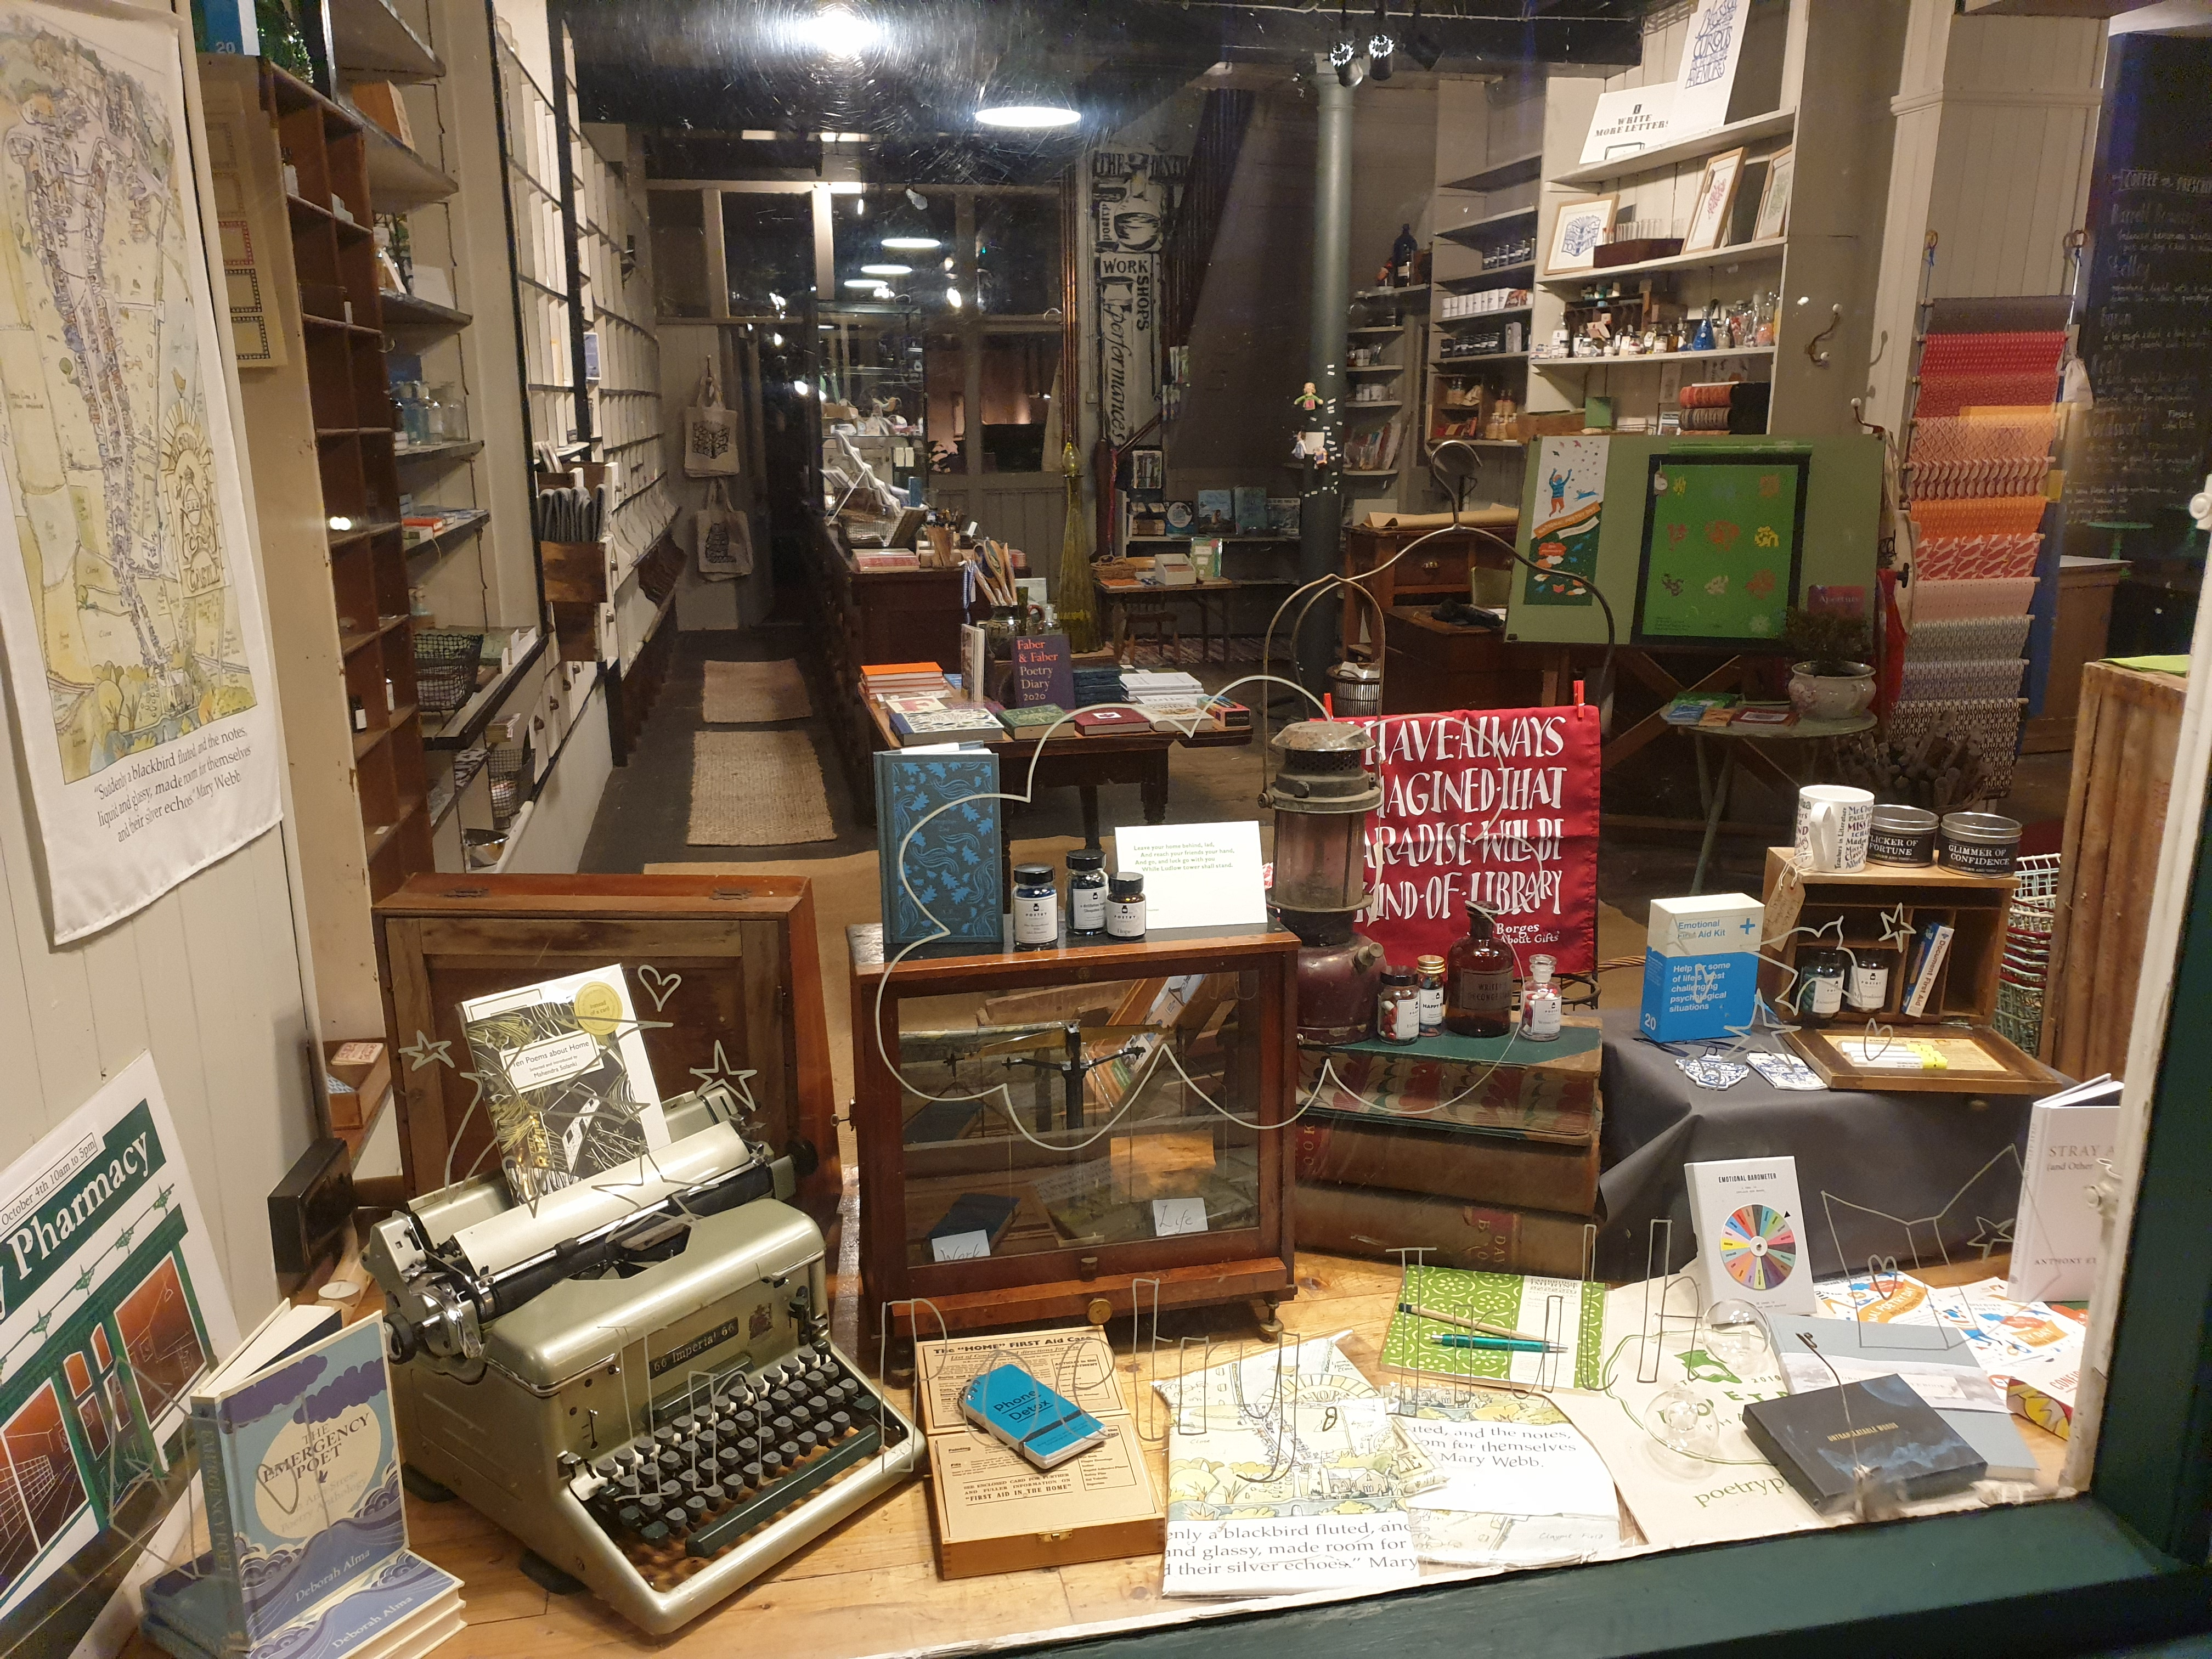 A view from the outside through the window of the Poetry Pharmacy. There is an old typewriter, shelves with bottles of ink, paper, books, boxes and drawers.